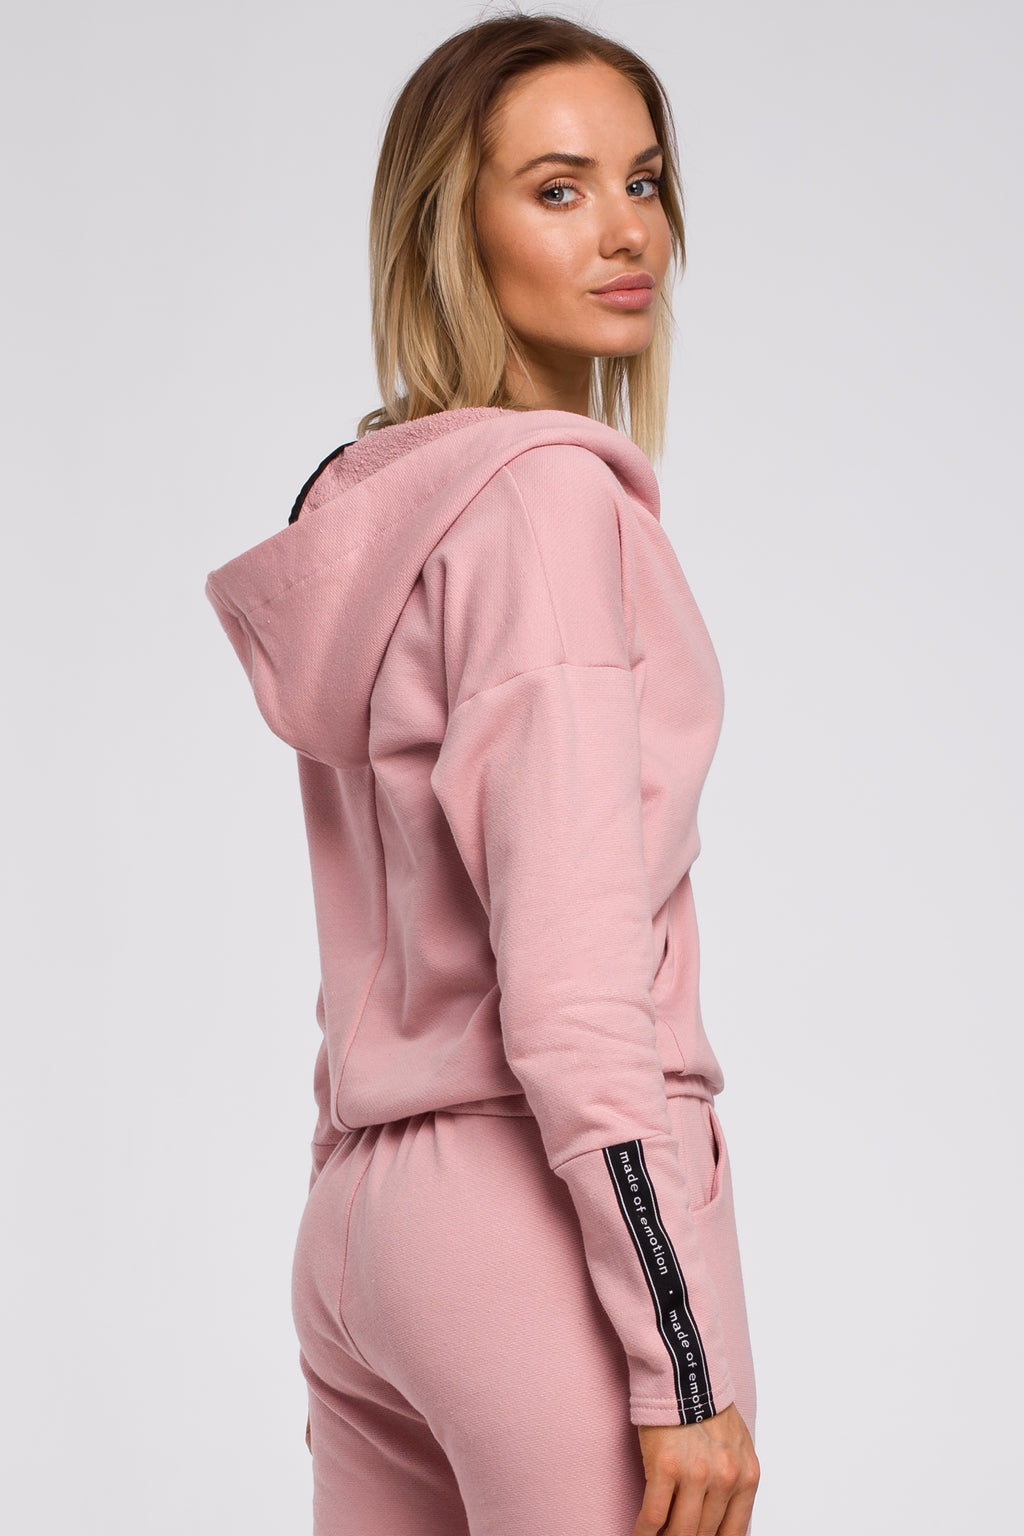 Kangaroo Pocket Powder Pink Hoodie With Wrap Front - So Chic Boutique